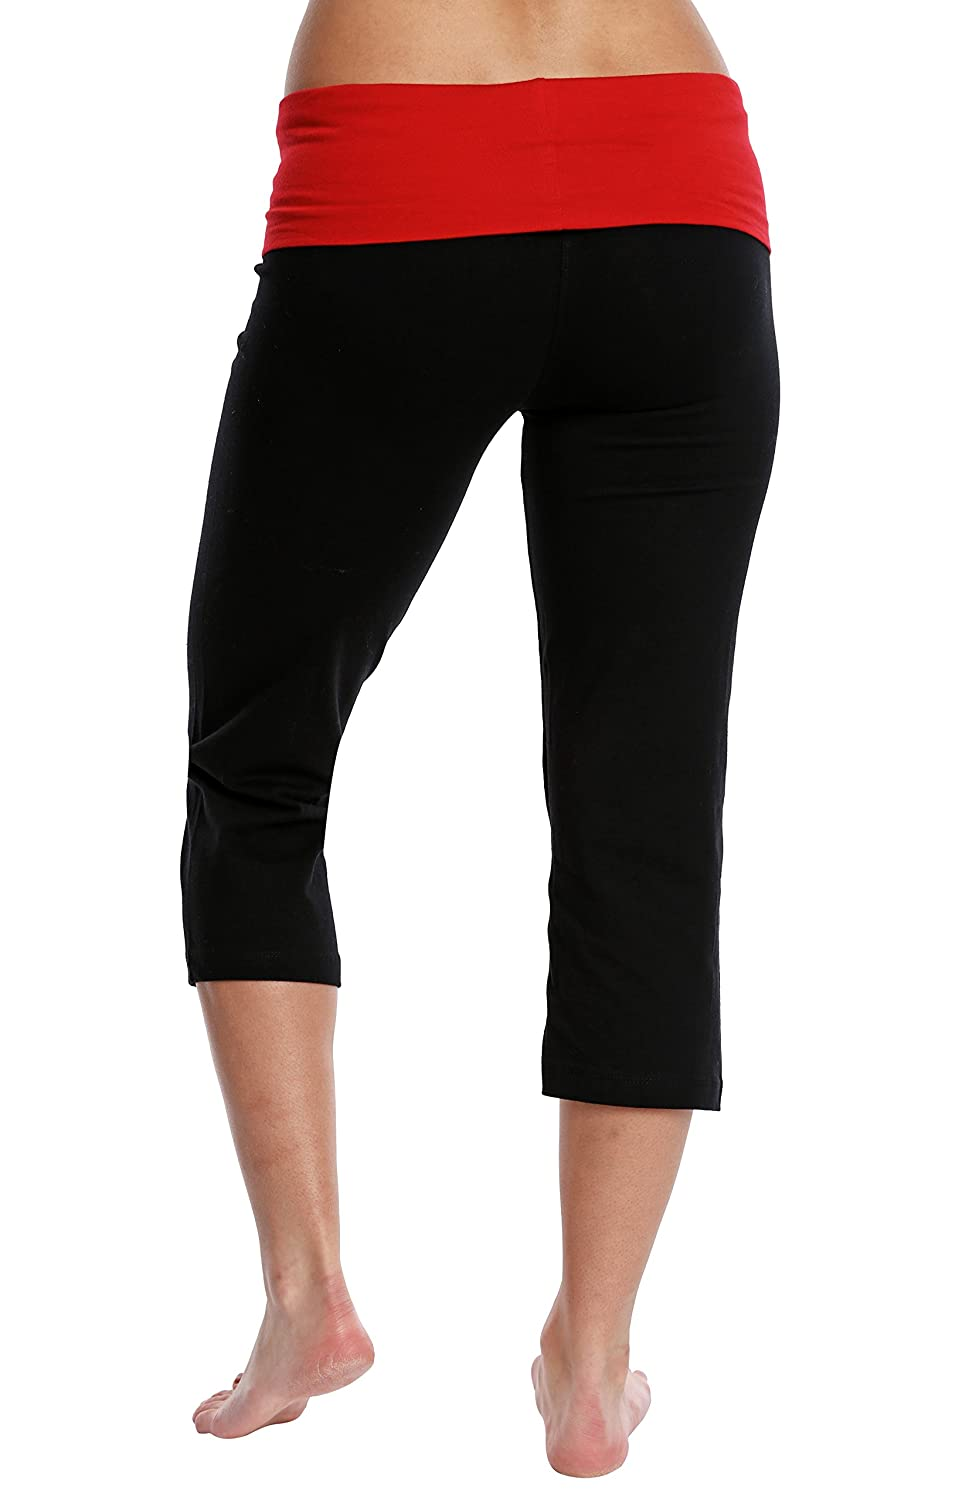 Nouveau Womens Workout Active Capri Yoga Pants with Contrasting Color Waistband Casual Loungewear